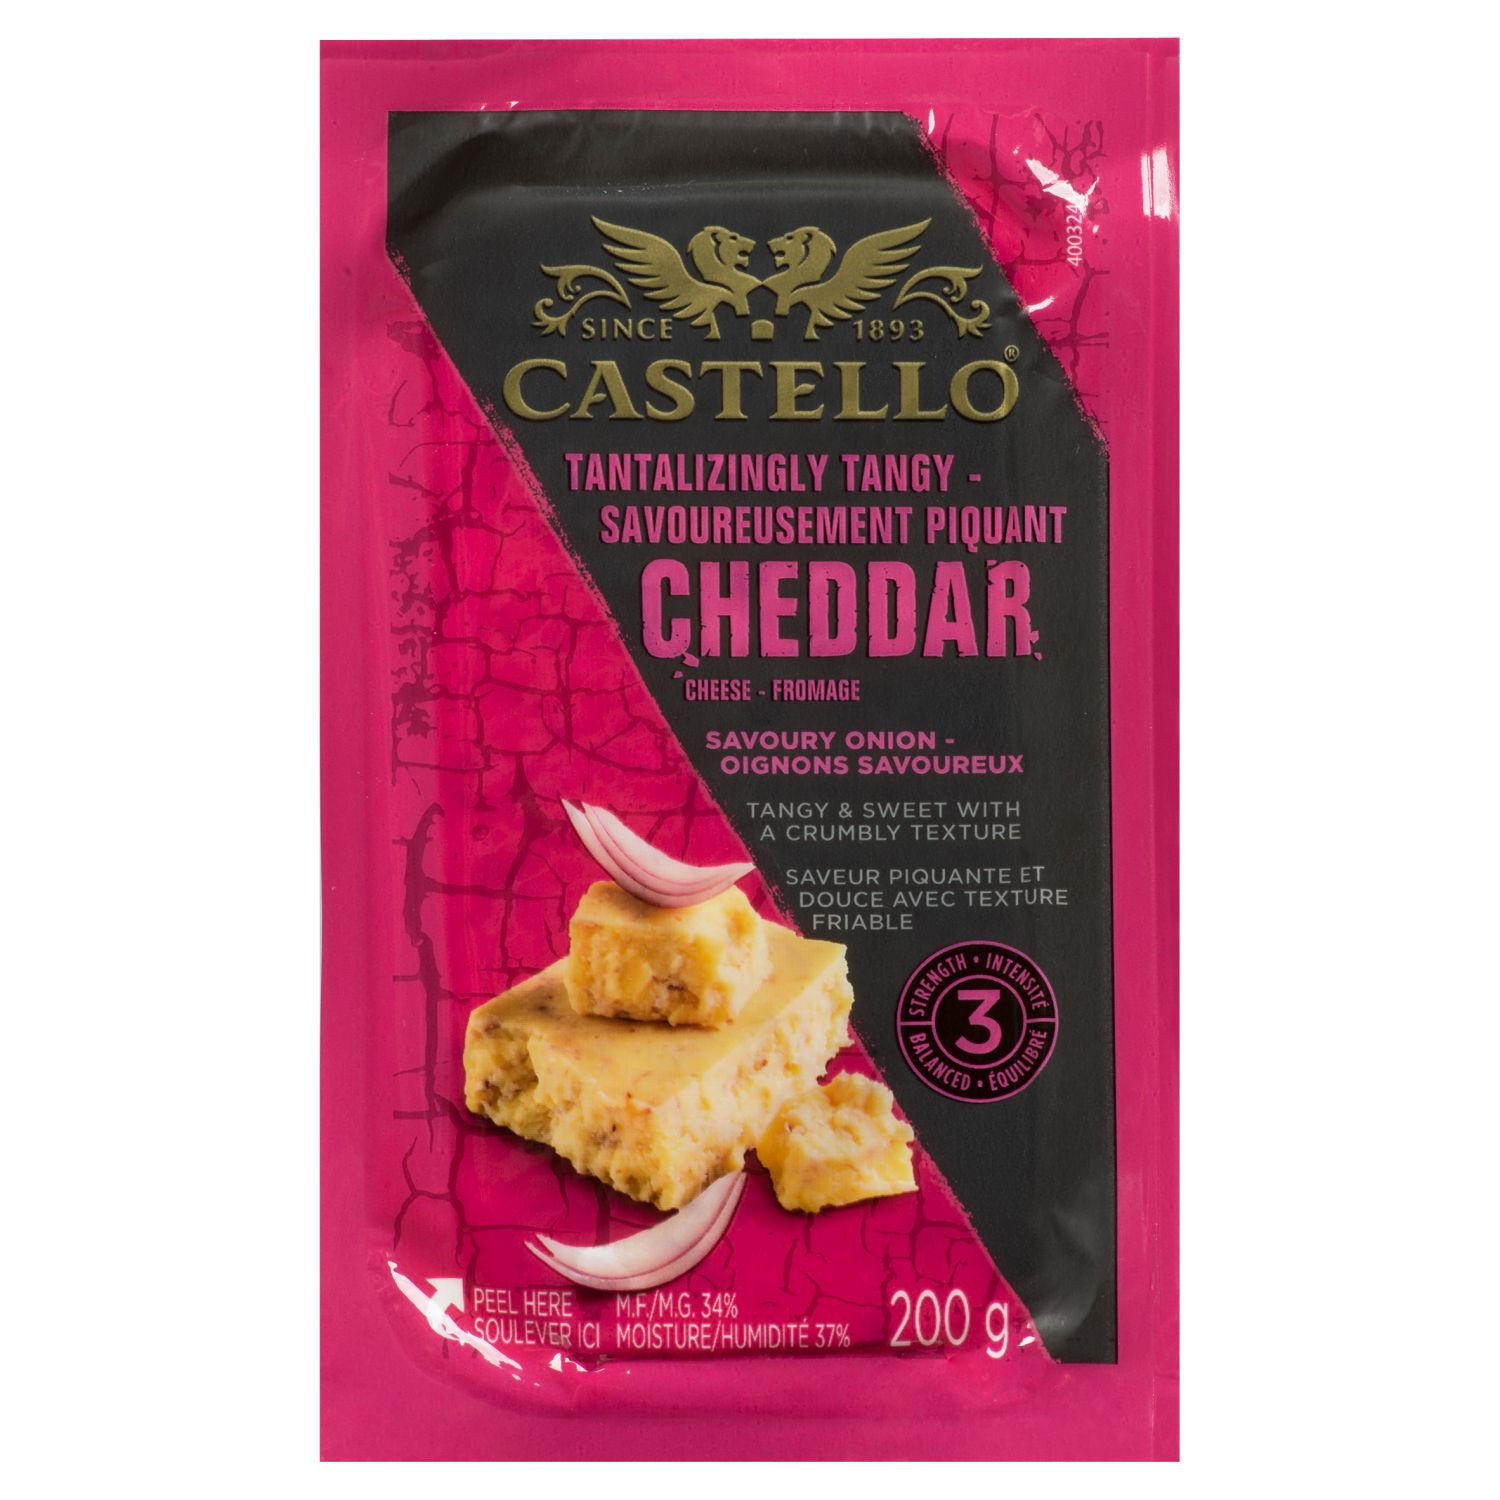 Castello Tantalizigly Tangy Savoury Onion Cheddar ...